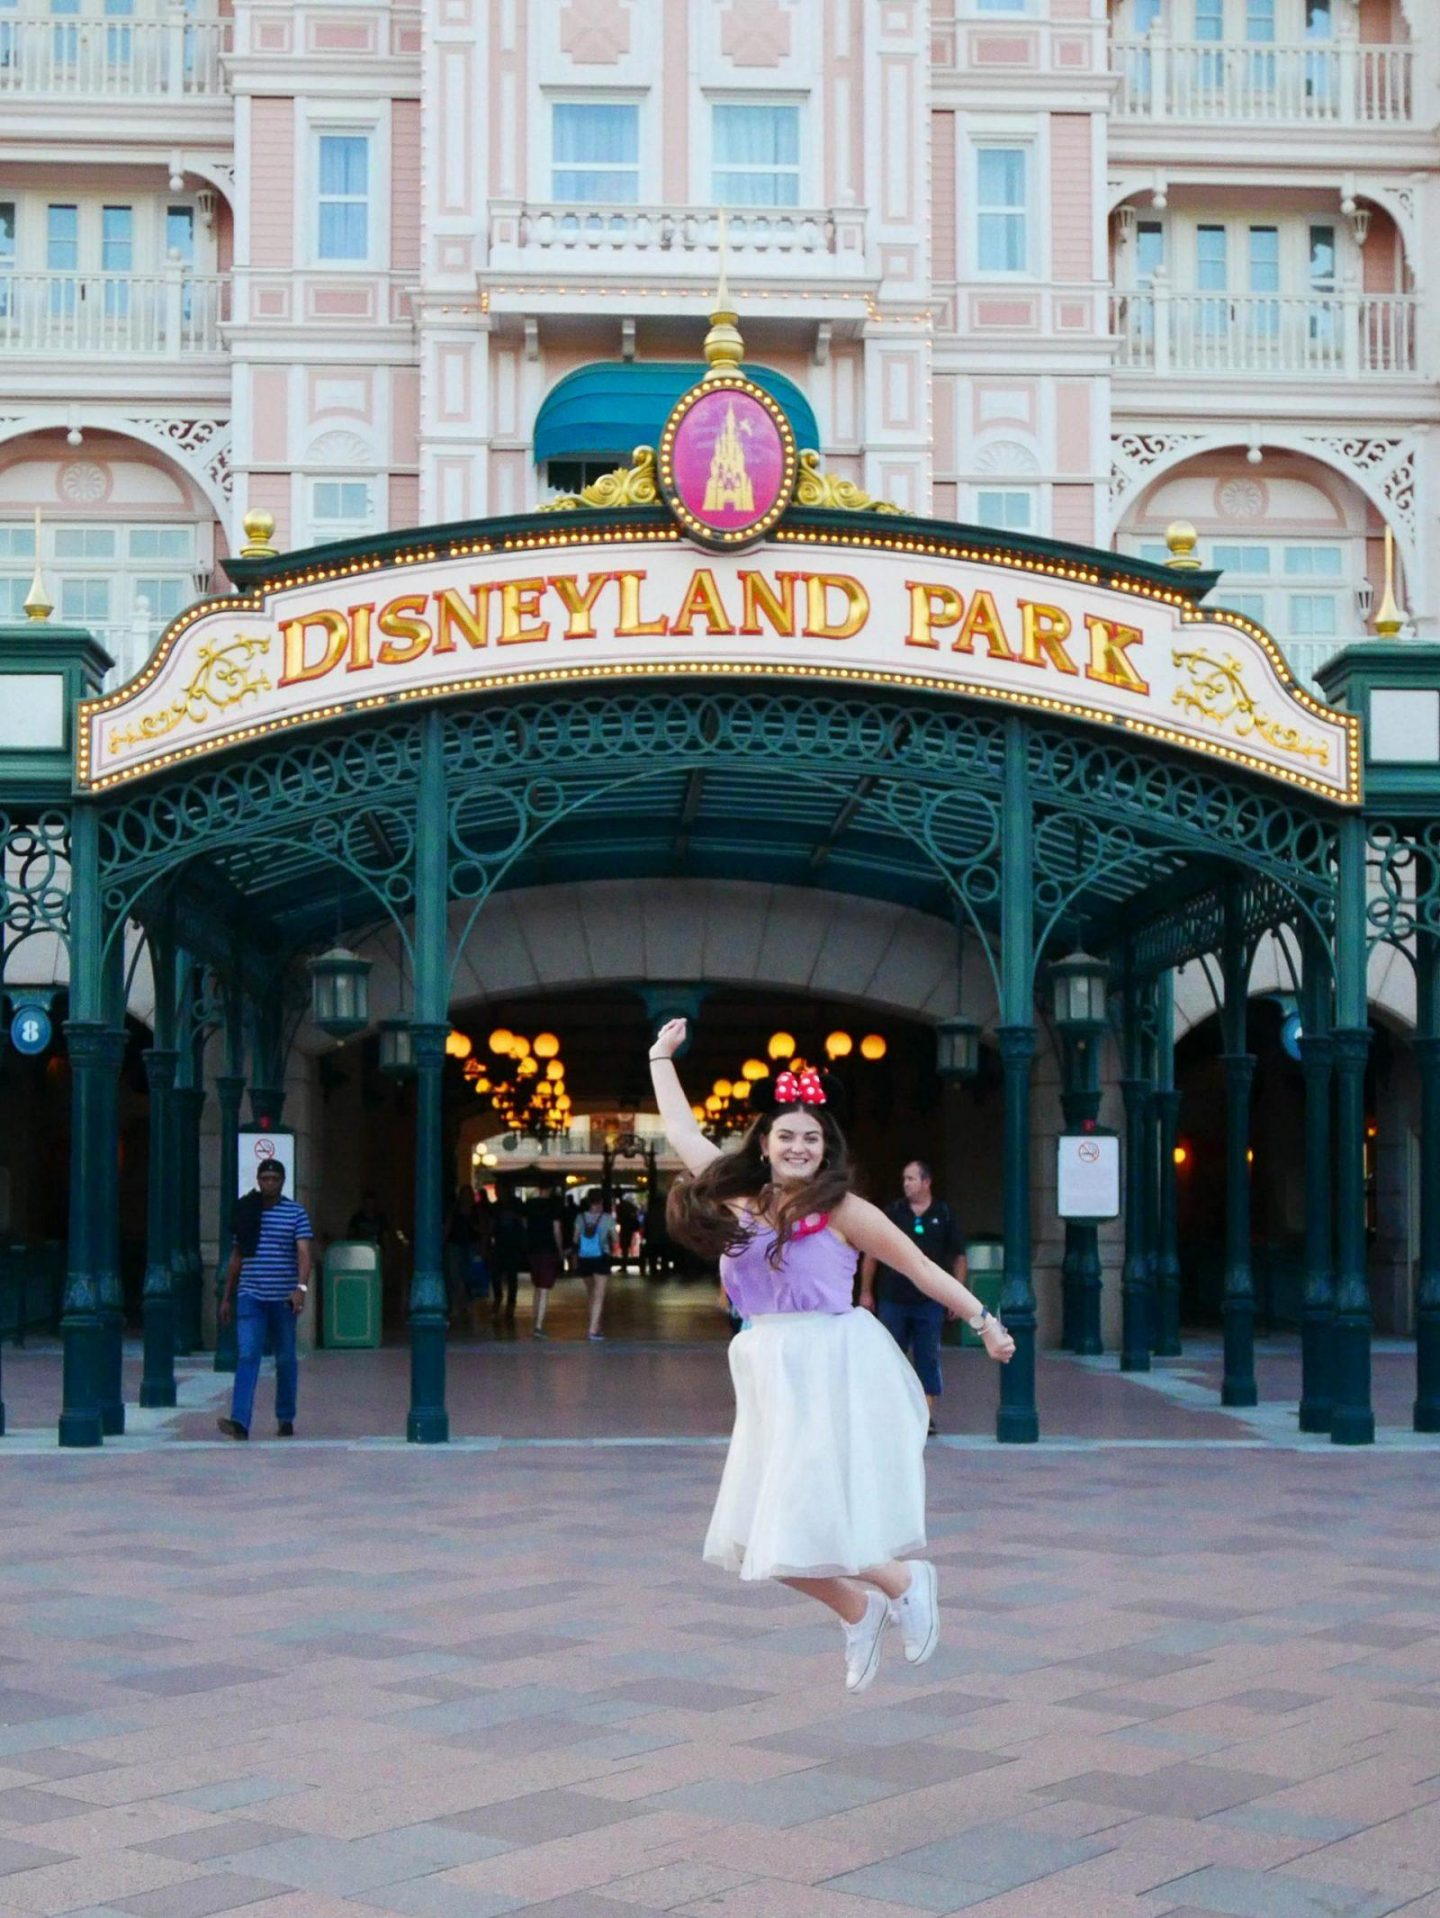 disneyland-paris-my-22nd-birthday-trip-rachel-nicole-uk-travel-disney-blogger-30-1600x2131